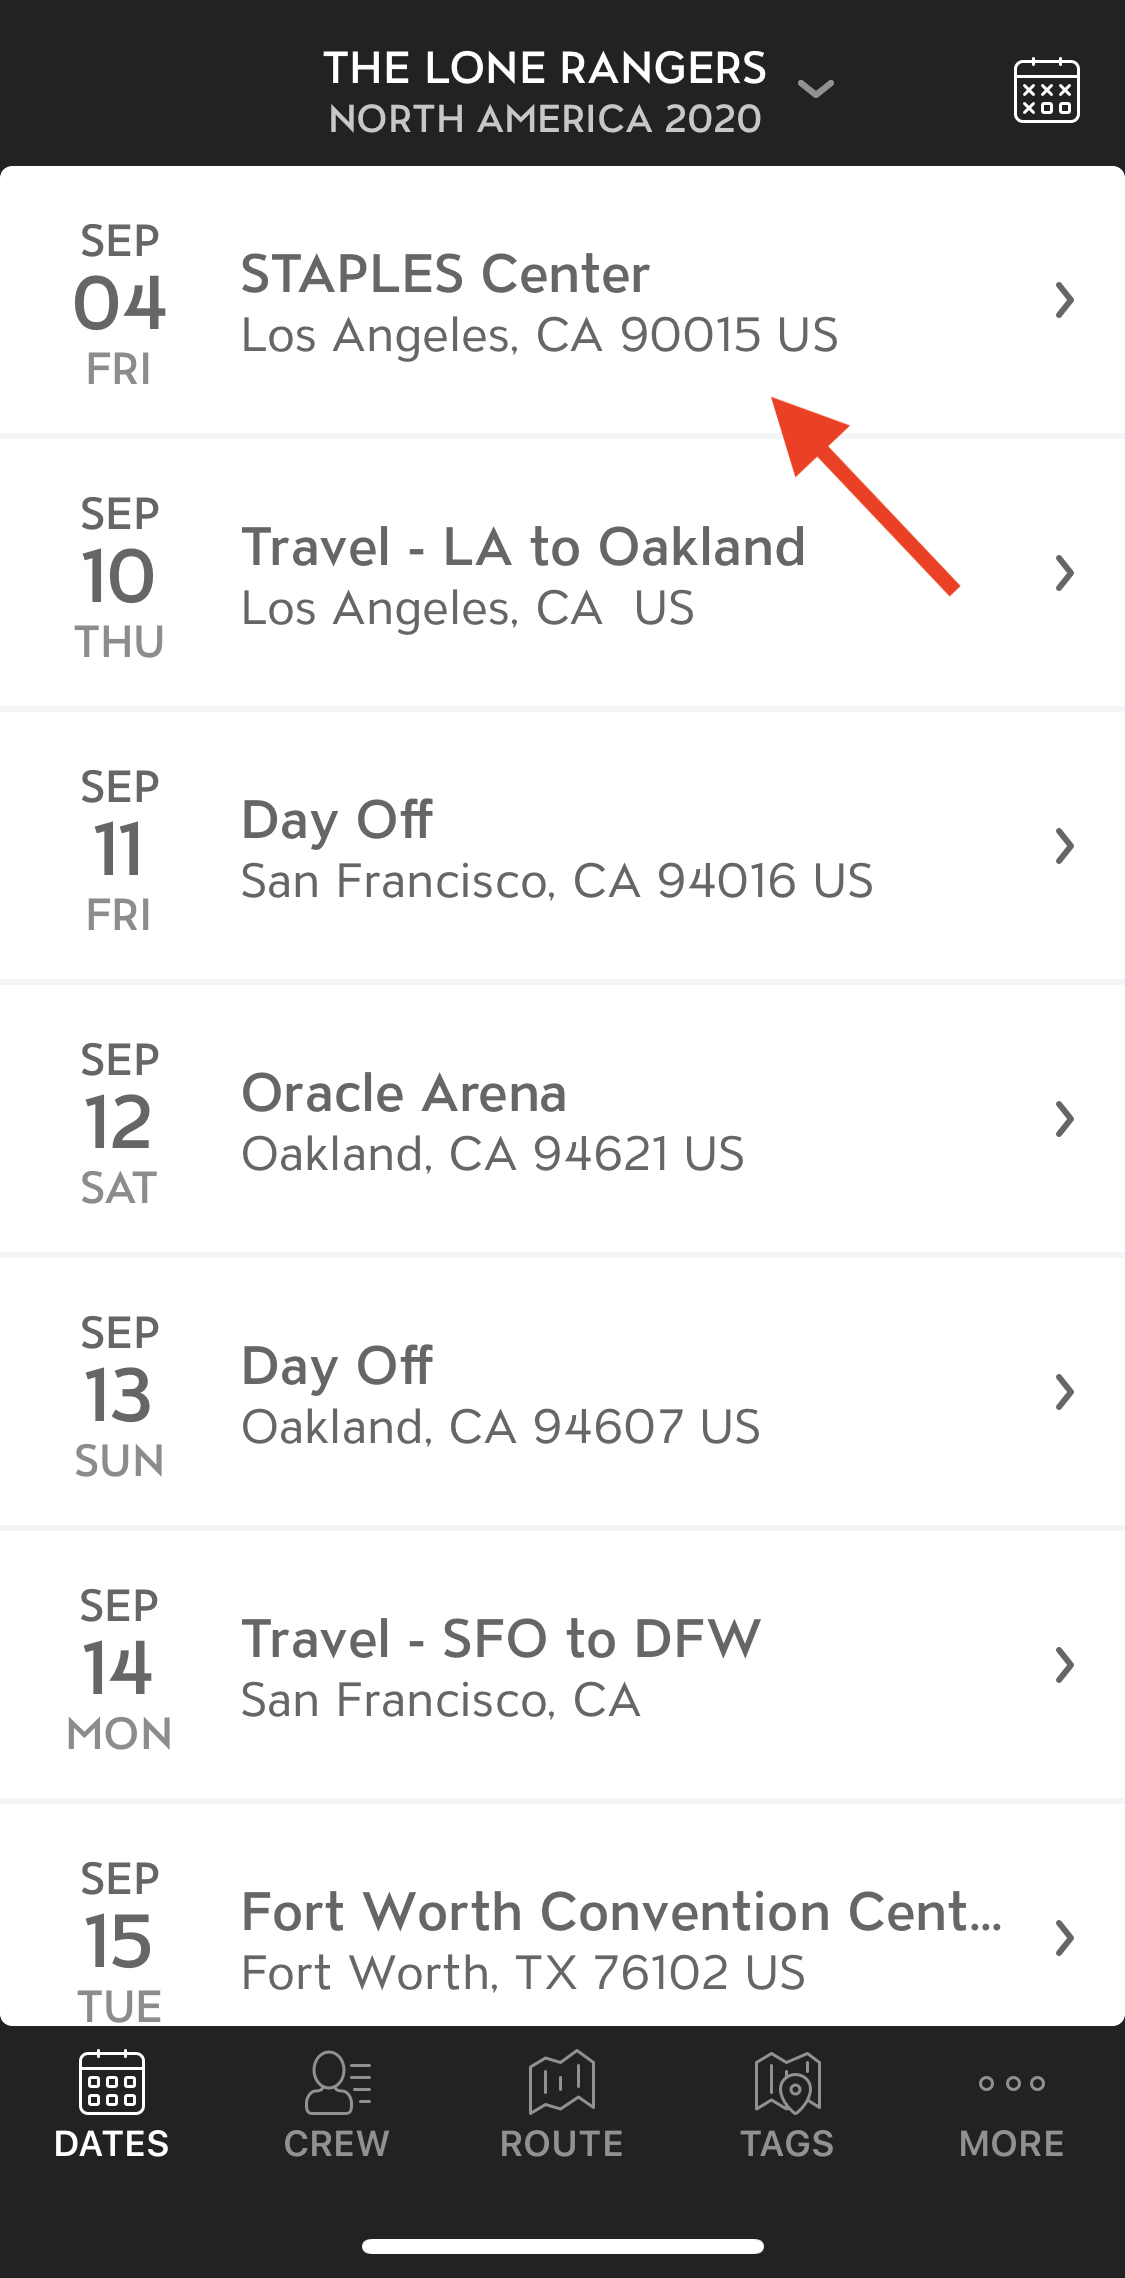 View Tour Date Attachments